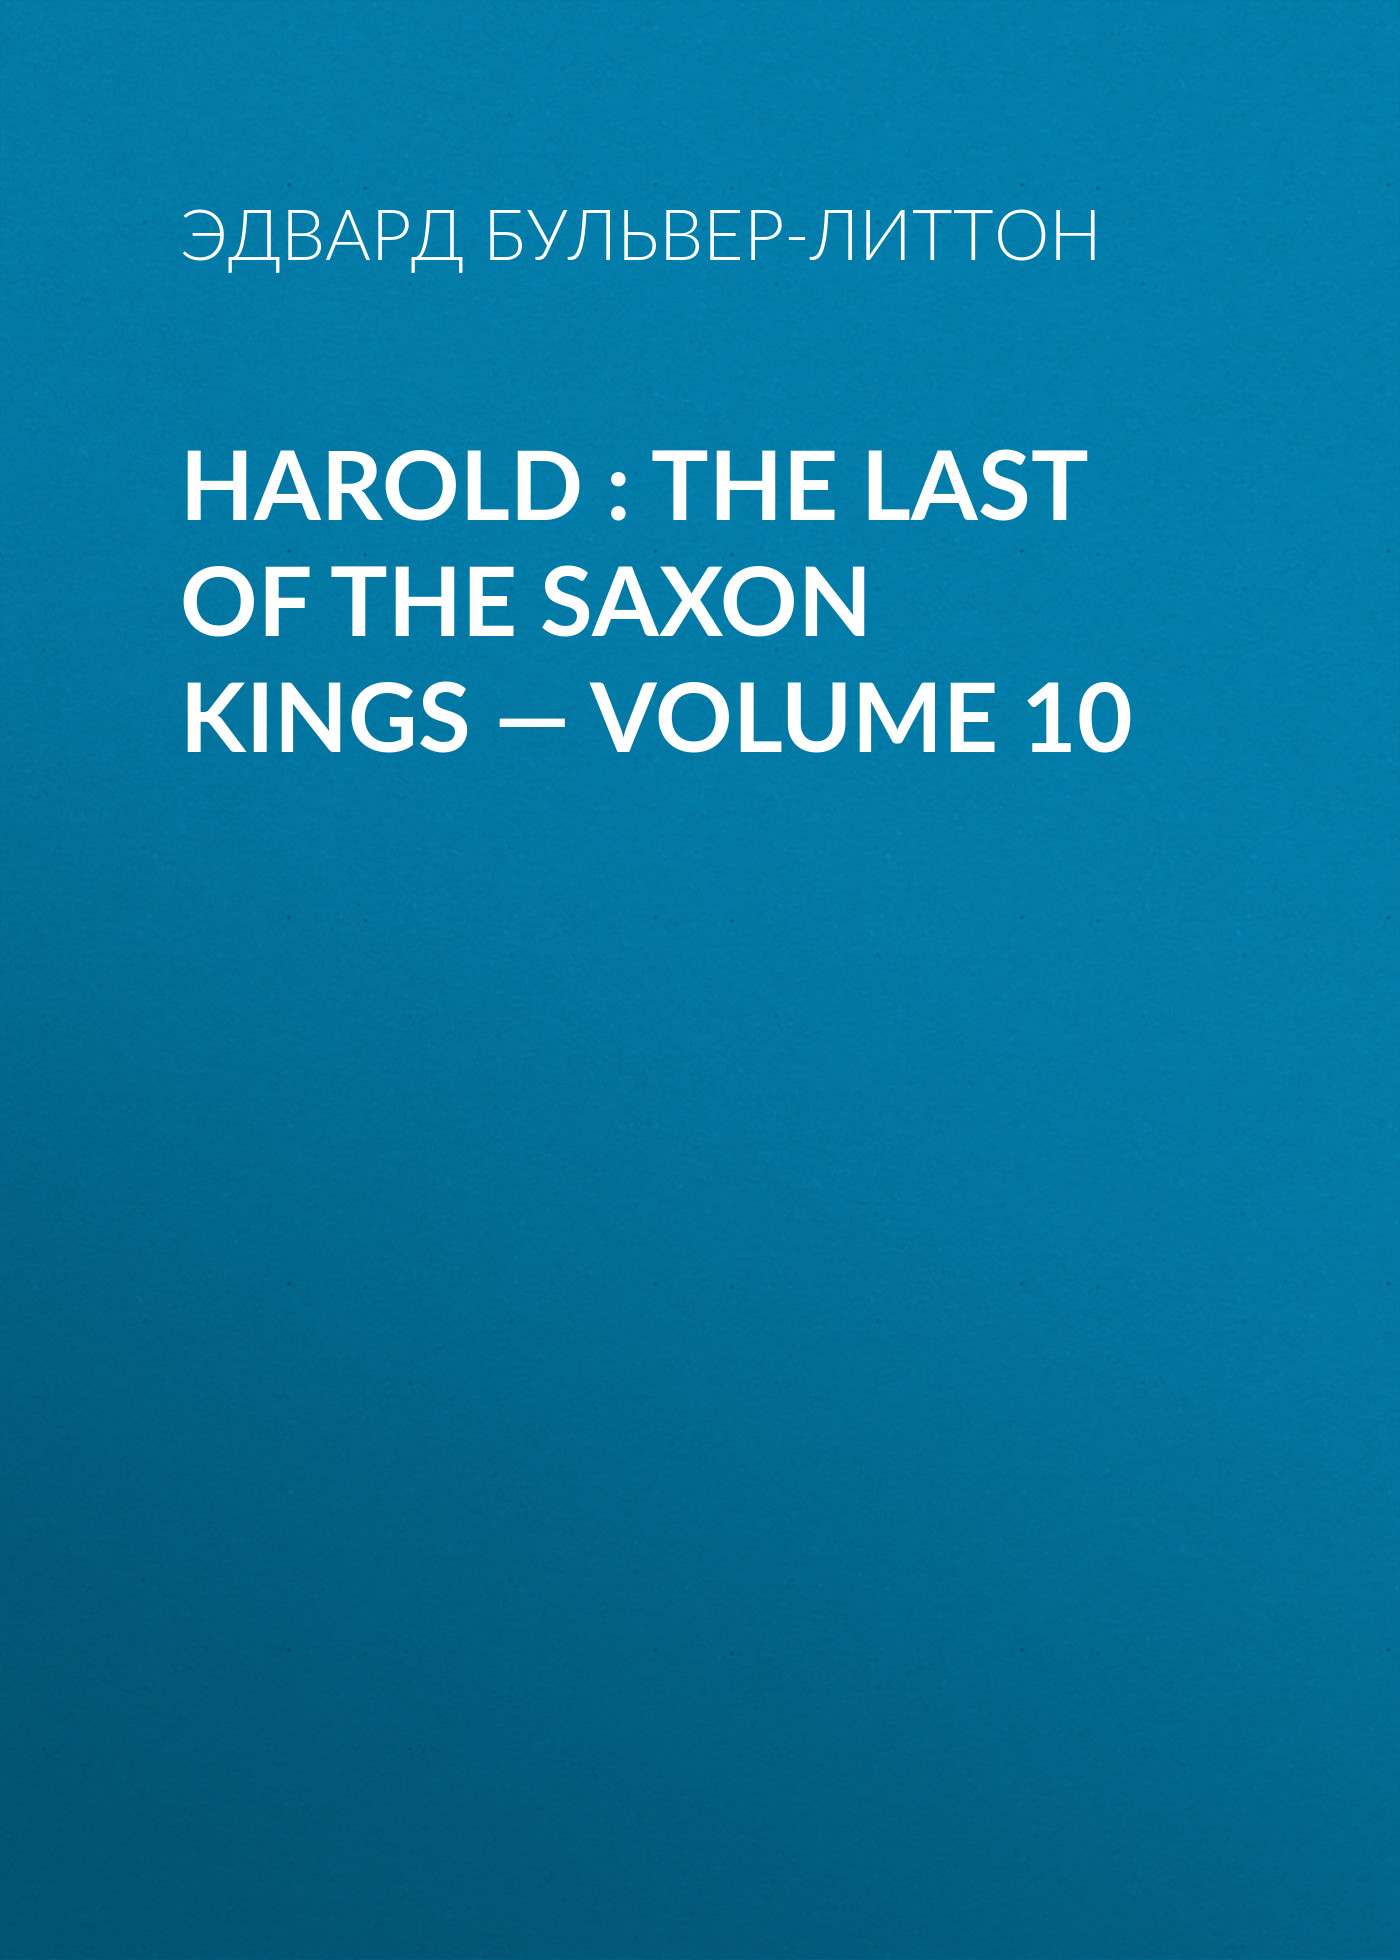 Эдвард Бульвер-Литтон Harold : the Last of the Saxon Kings — Volume 10 эдвард бульвер литтон harold the last of the saxon kings volume 10